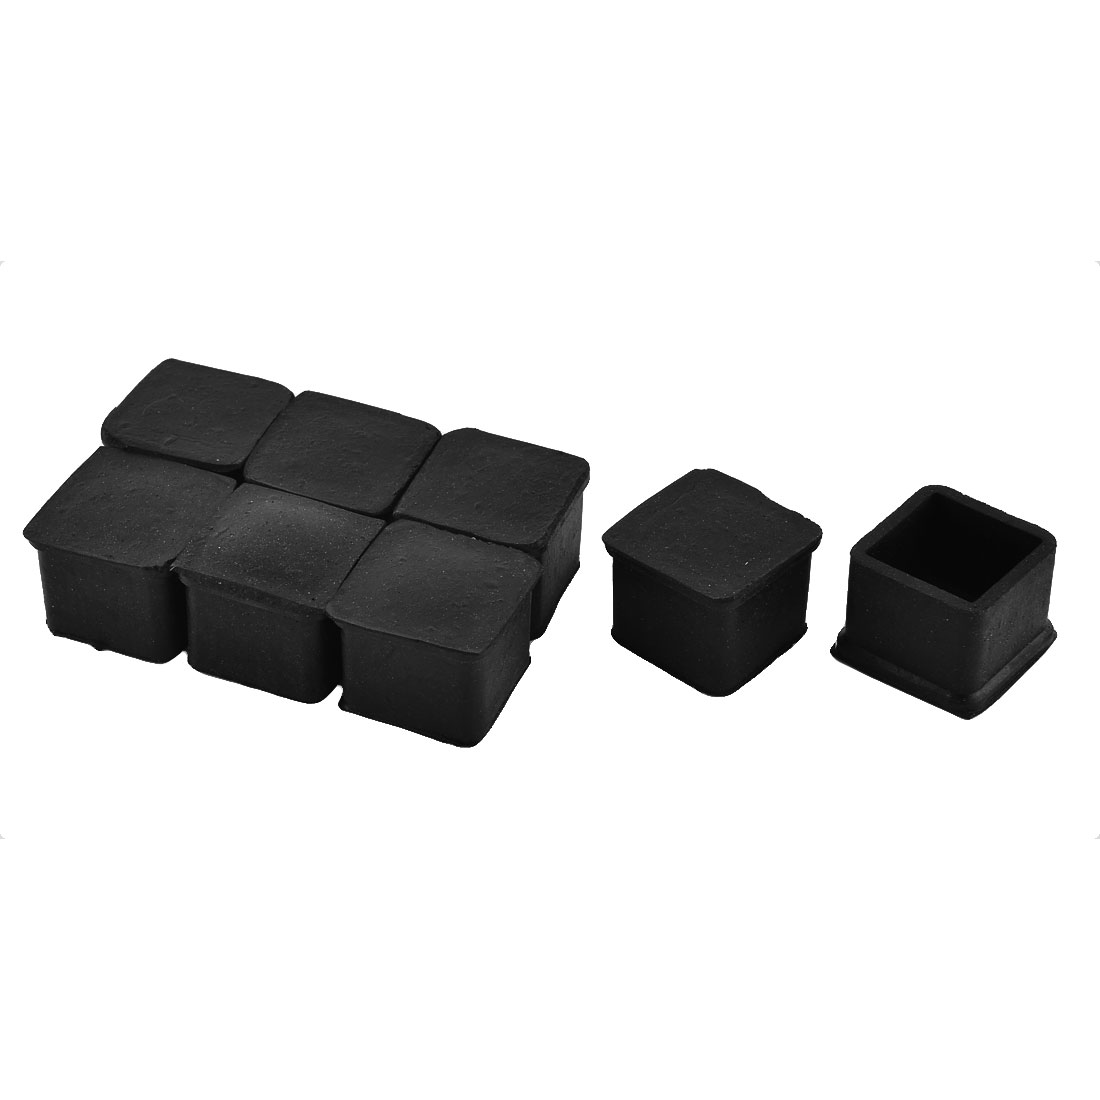 24mm x 24mm Square Shaped Furniture Table Desk Foot Rubber Caps Cover Black 8pcs